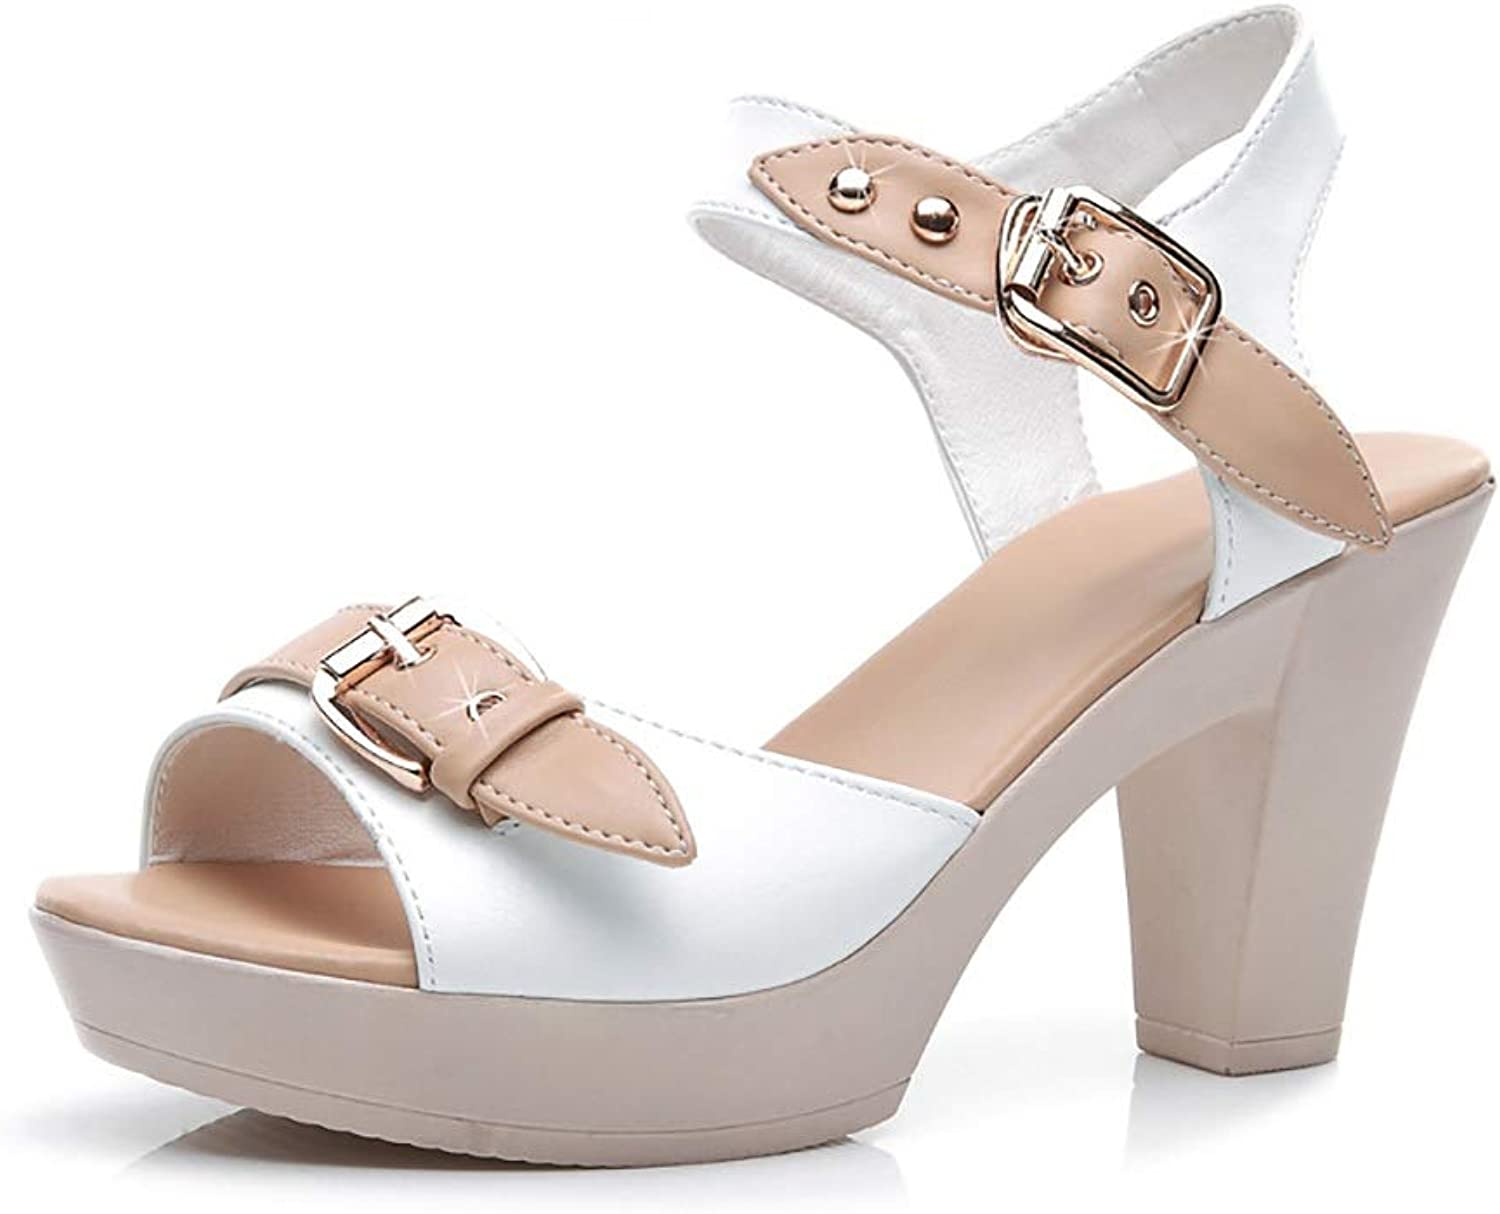 Sandals for Women, Waterproof Platform with High Heel Fish Mouth shoes Women's shoes (color   White, Size   7 US)